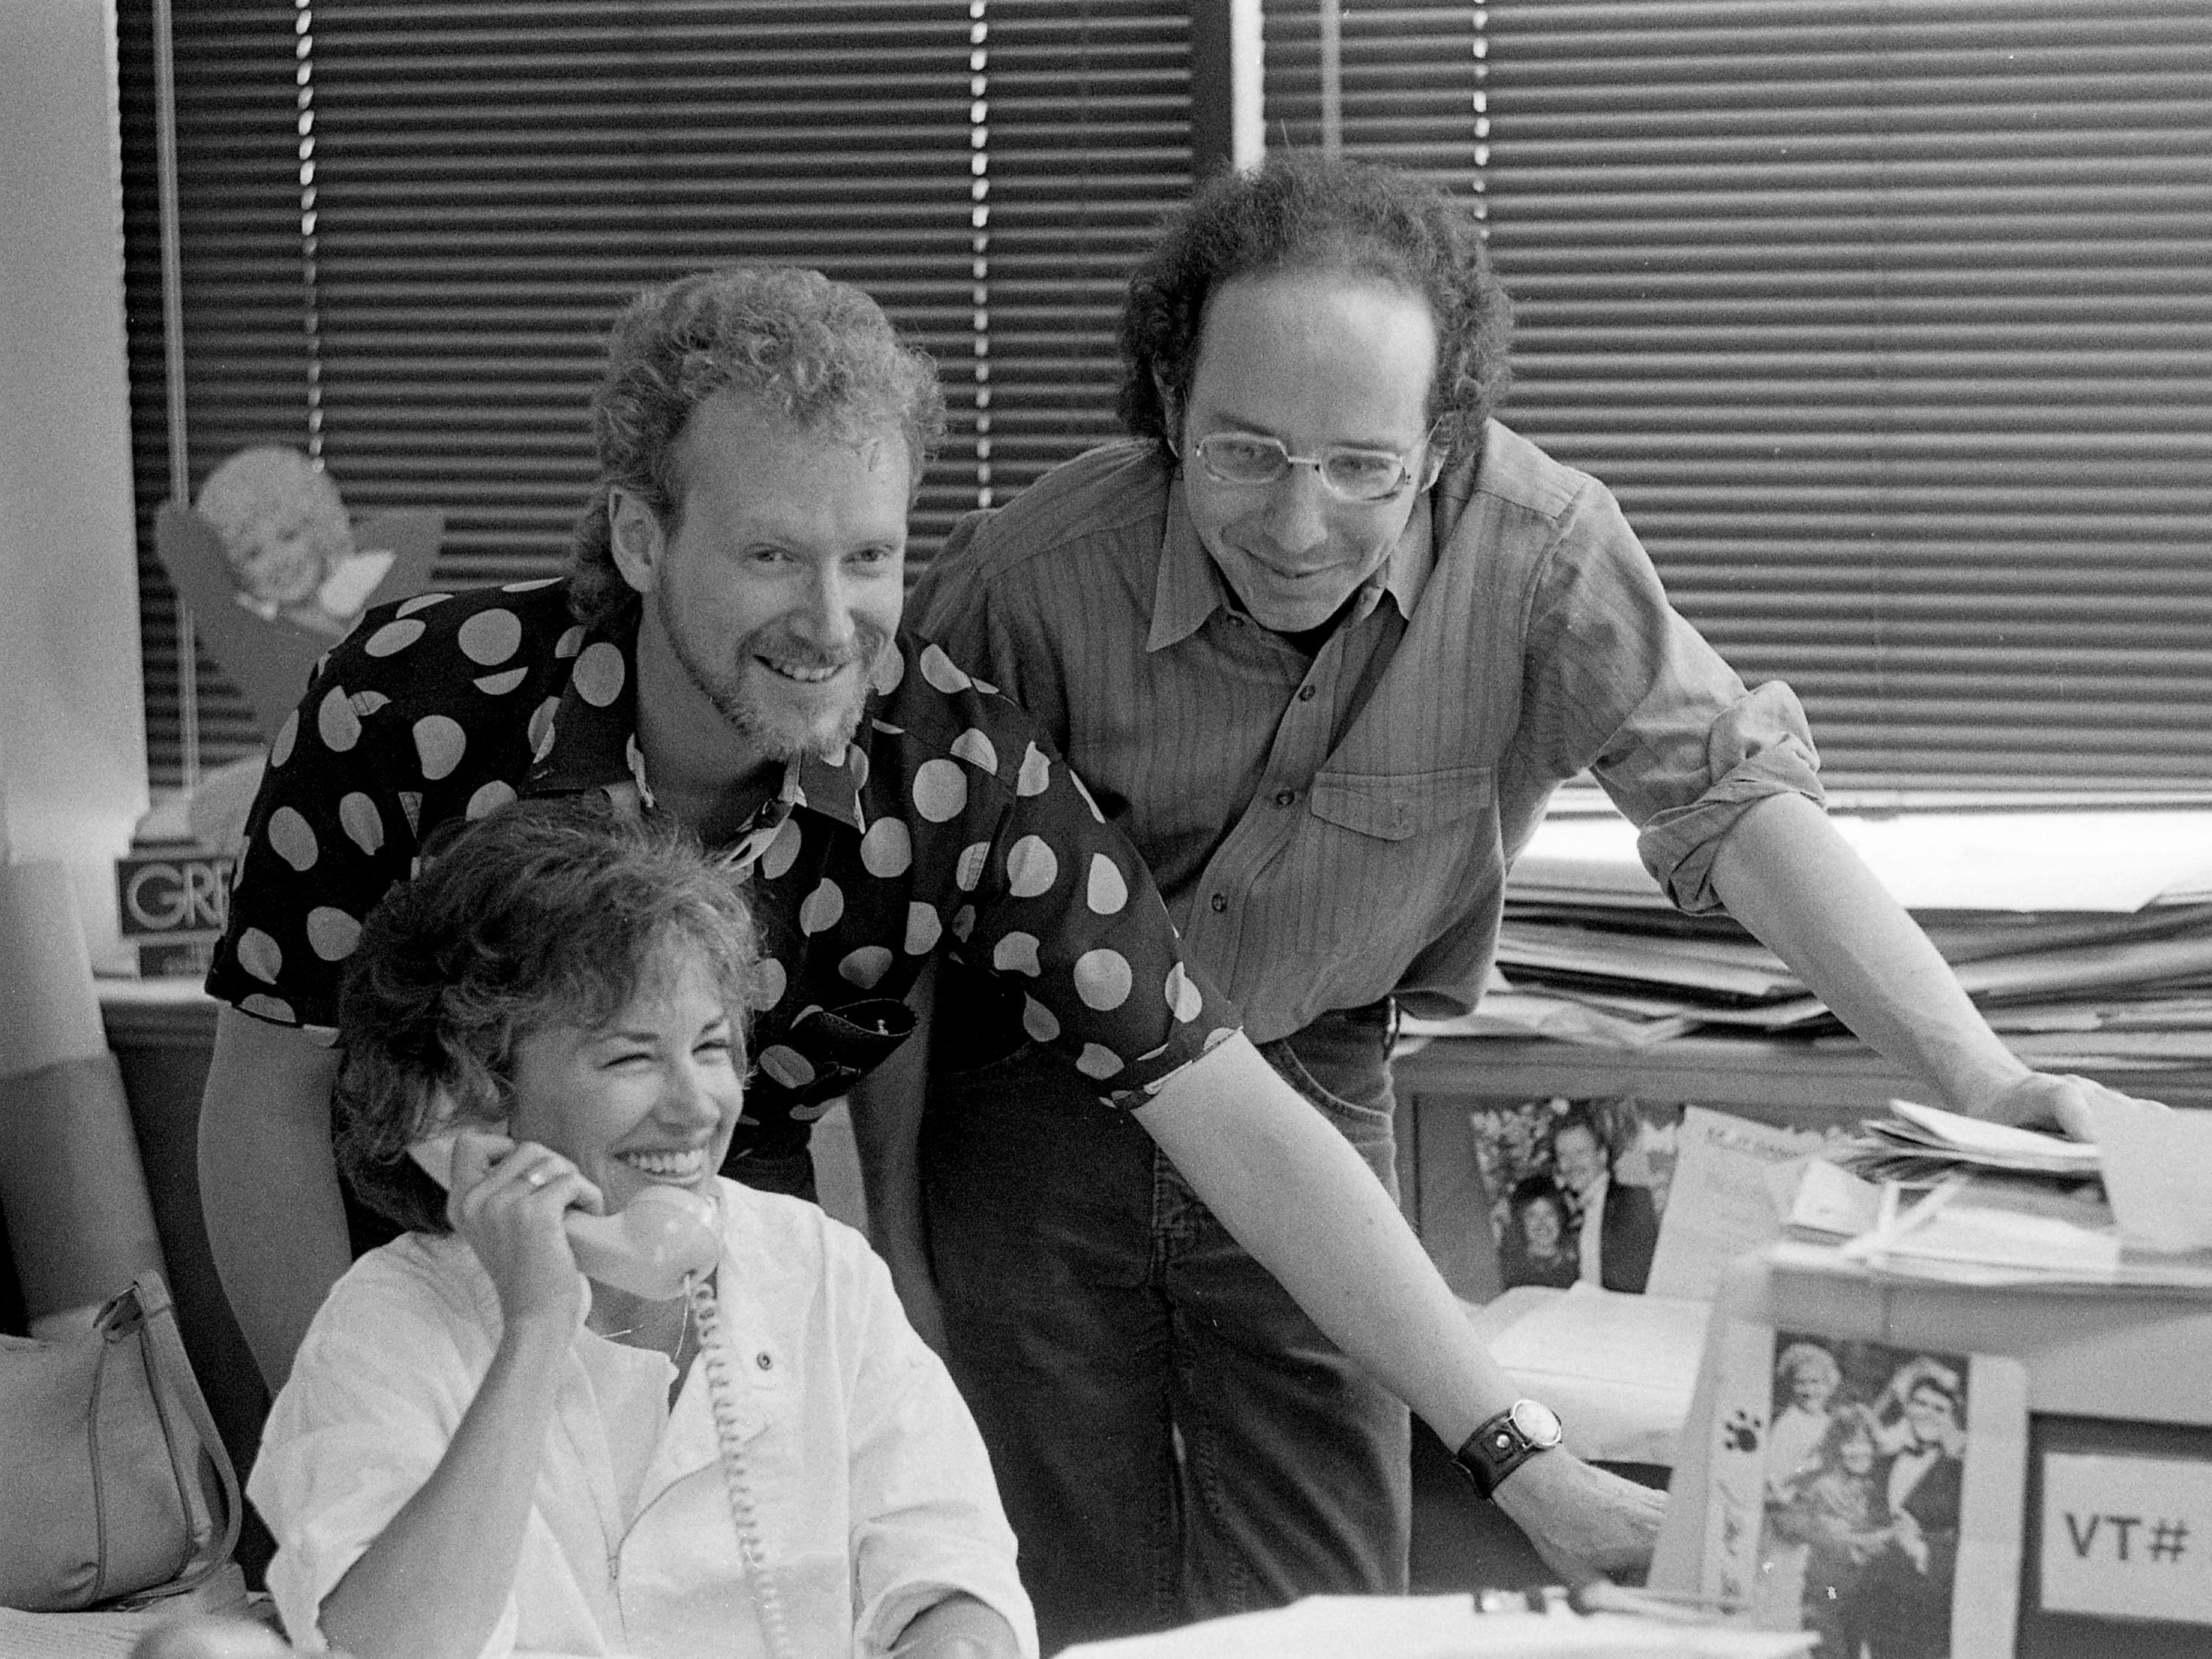 Tennessean music reporters Sandy Neese, sitting left, Robert Oermann and Tommy Goldsmith are hard at work in the office at 1100 Broadway on May 4, 1985.